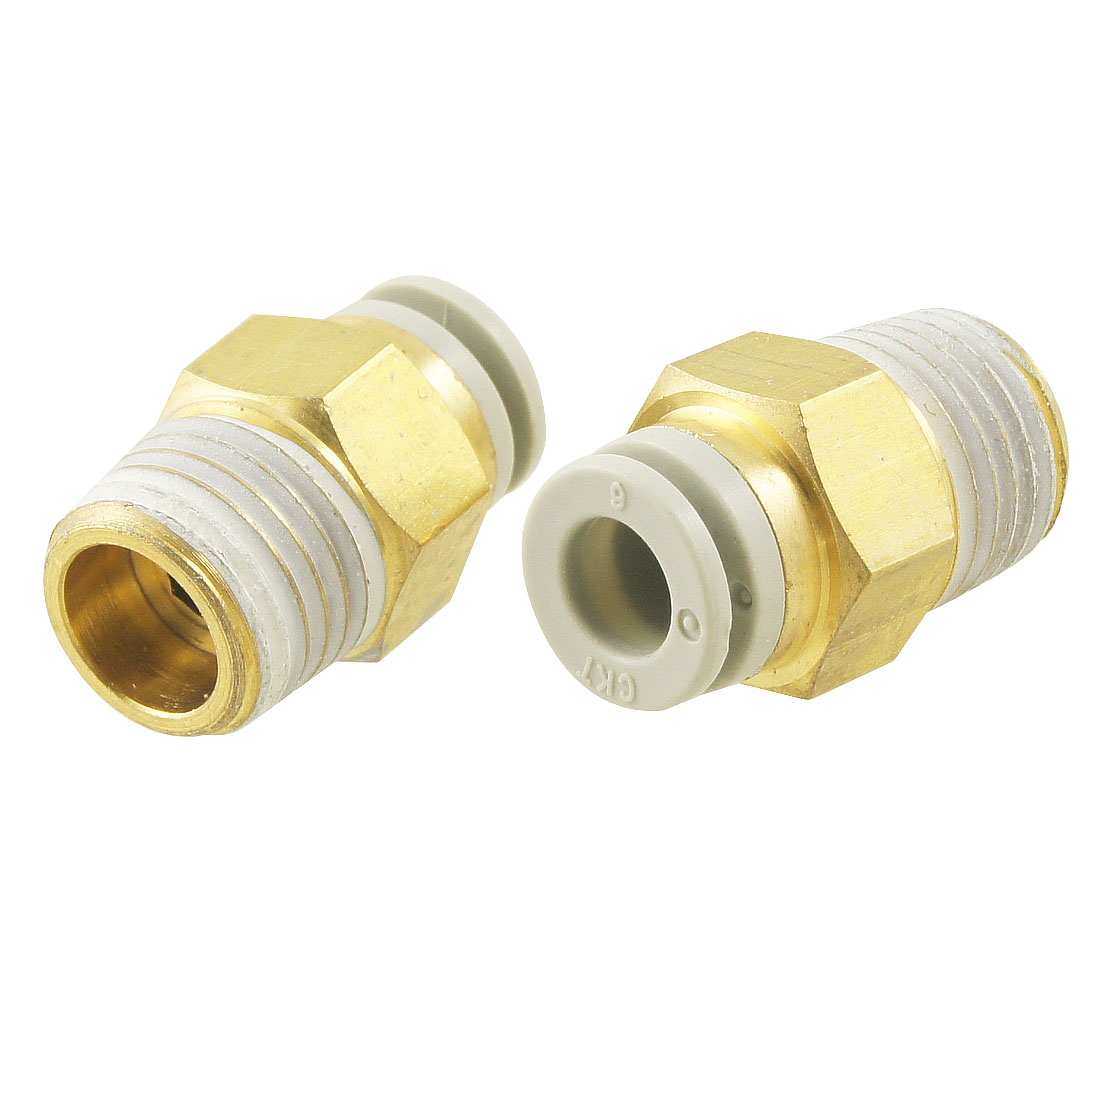 "10 Pcs Push in to Connect Pneumatic Straight Fitting 1/4"" PT x 15/64"""